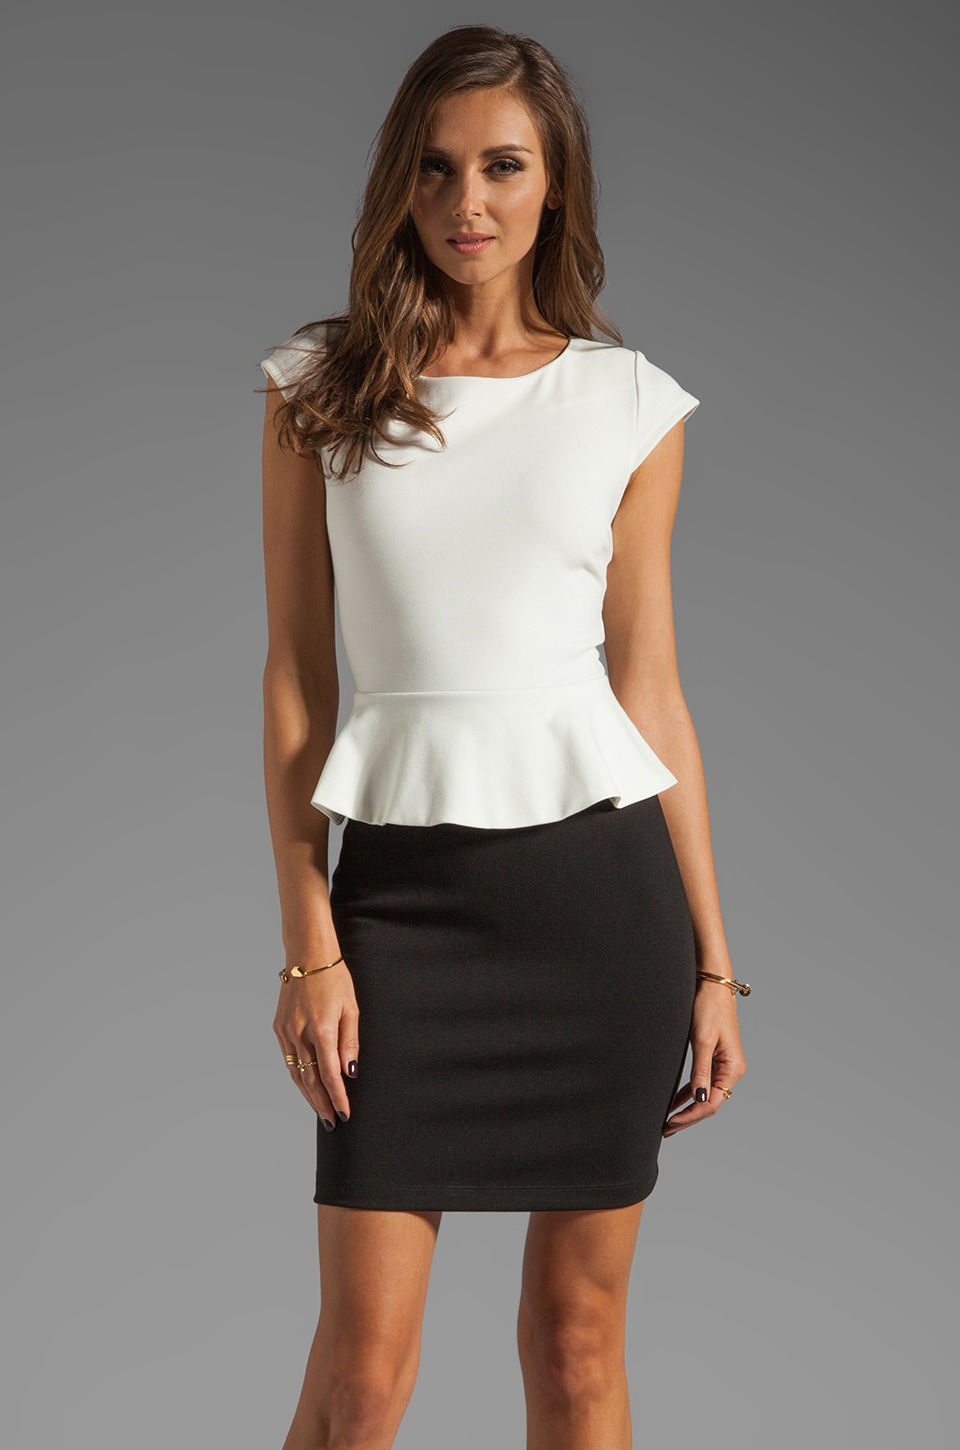 Central Park West Newport Peplum Short Sleeve Dress in Ivory/Black